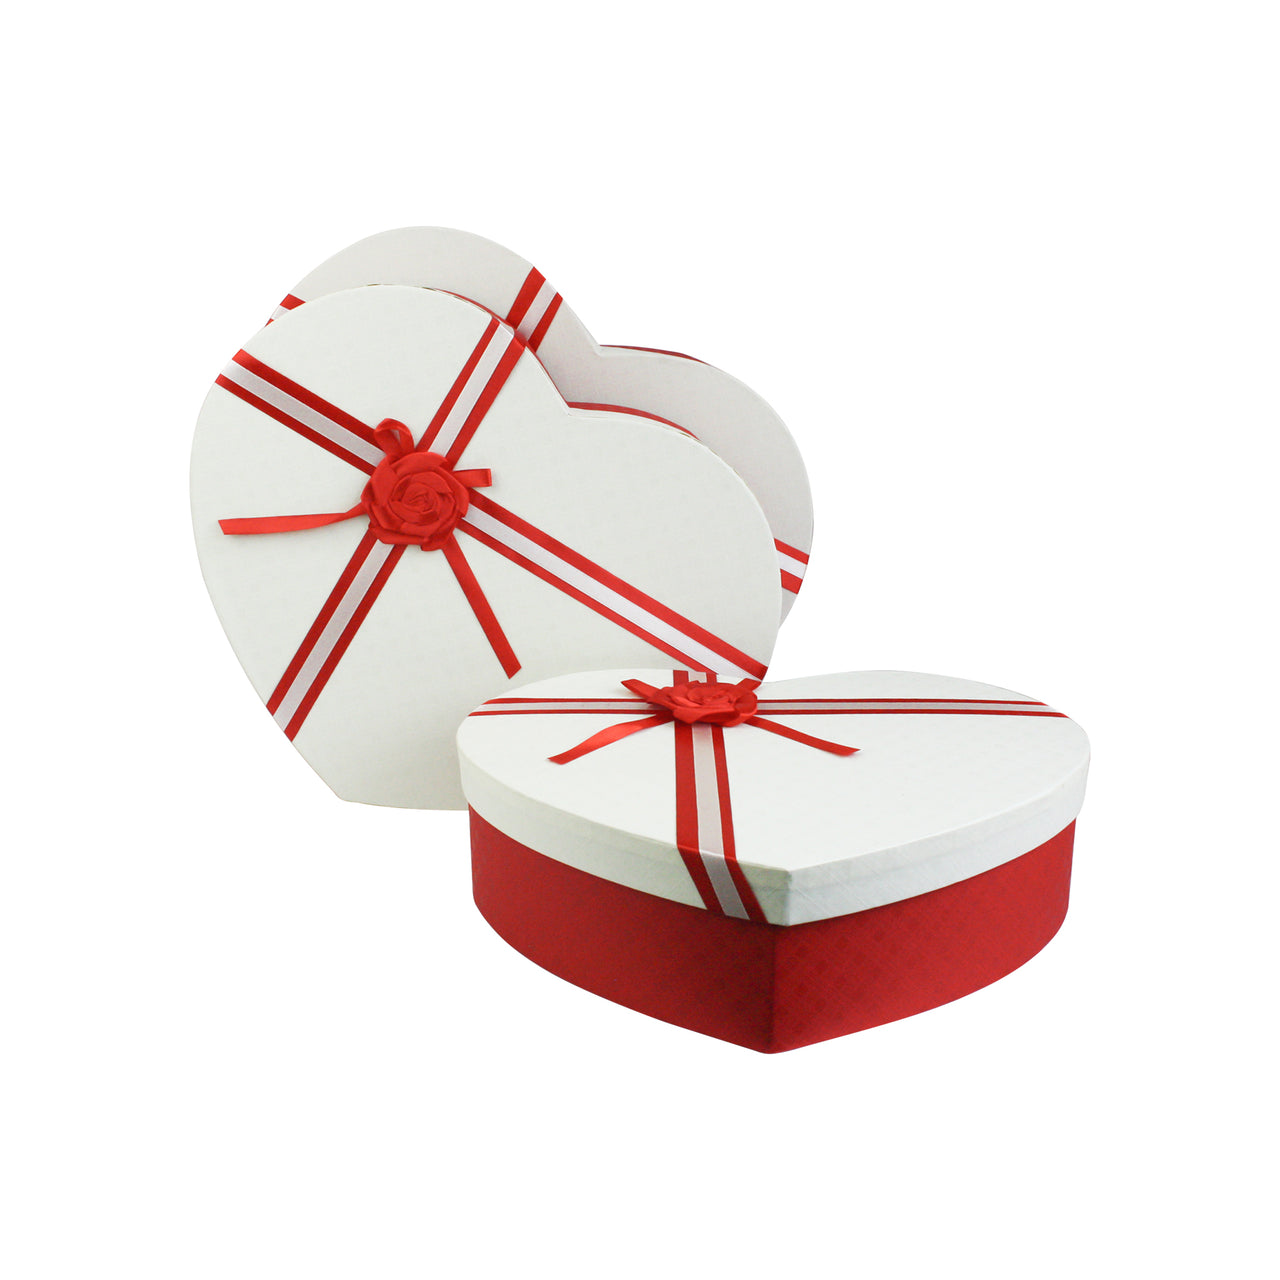 Red White with Bow Gift Box - Set Of 3